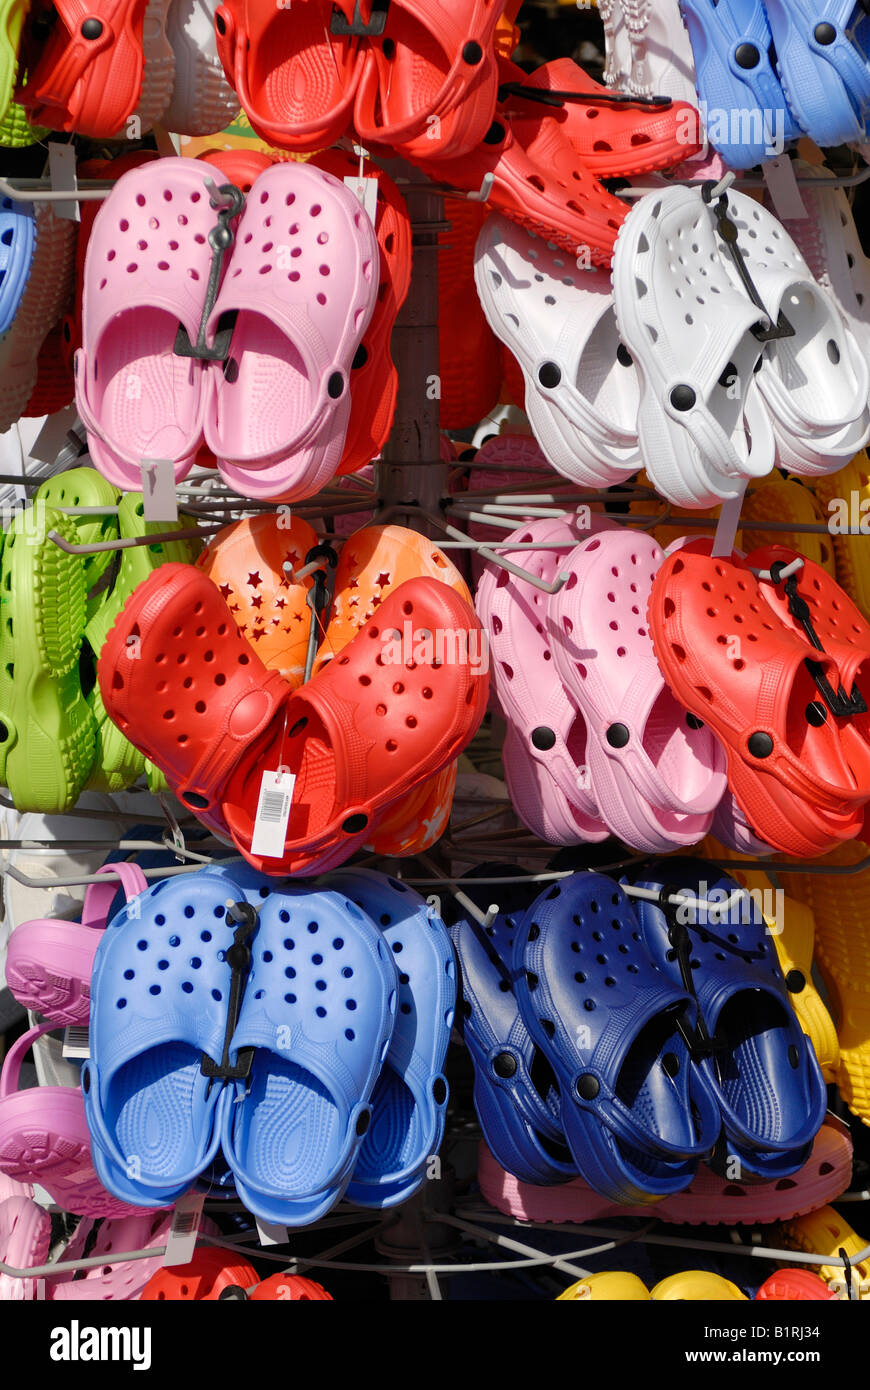 Crocs hung up on a stand, Germany, Europe - Stock Image